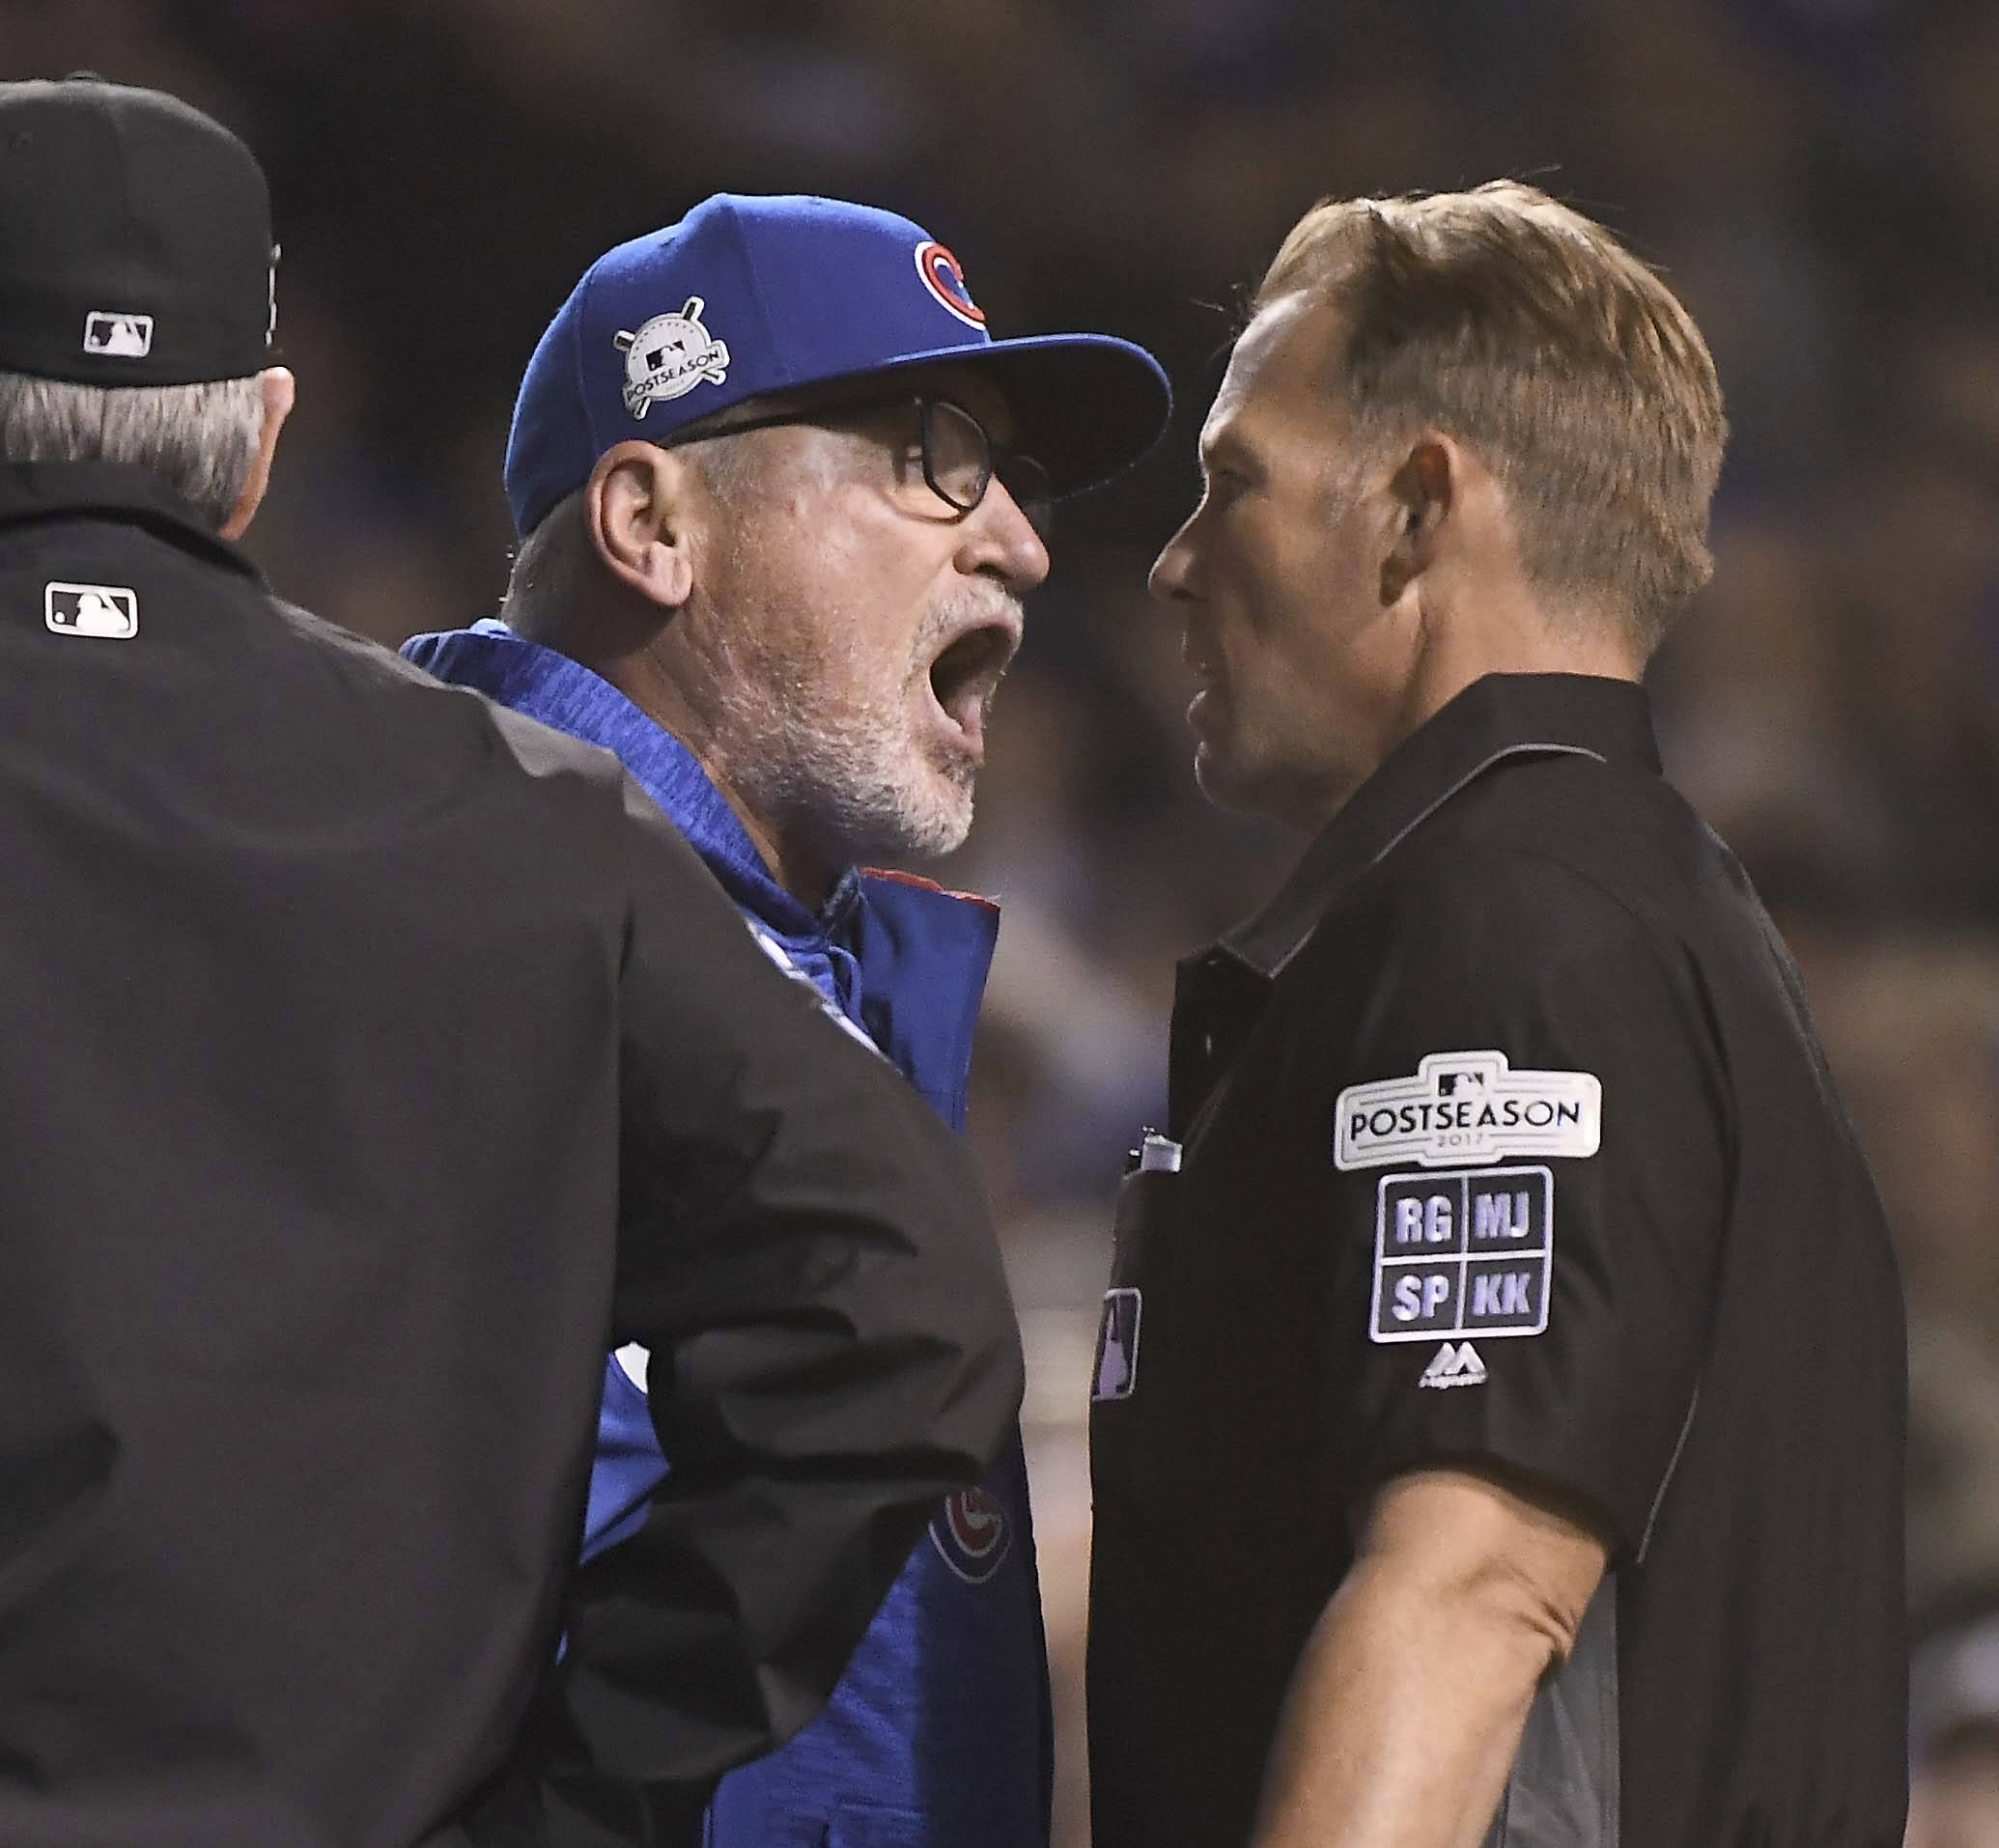 Chicago Cubs manager Joe Maddon said he has not heard from Major League Baseball about his ejection from Game 4 of the NLCS. Maddon also praised umpire Jim Wolf, who admitted he made a mistake in the game.